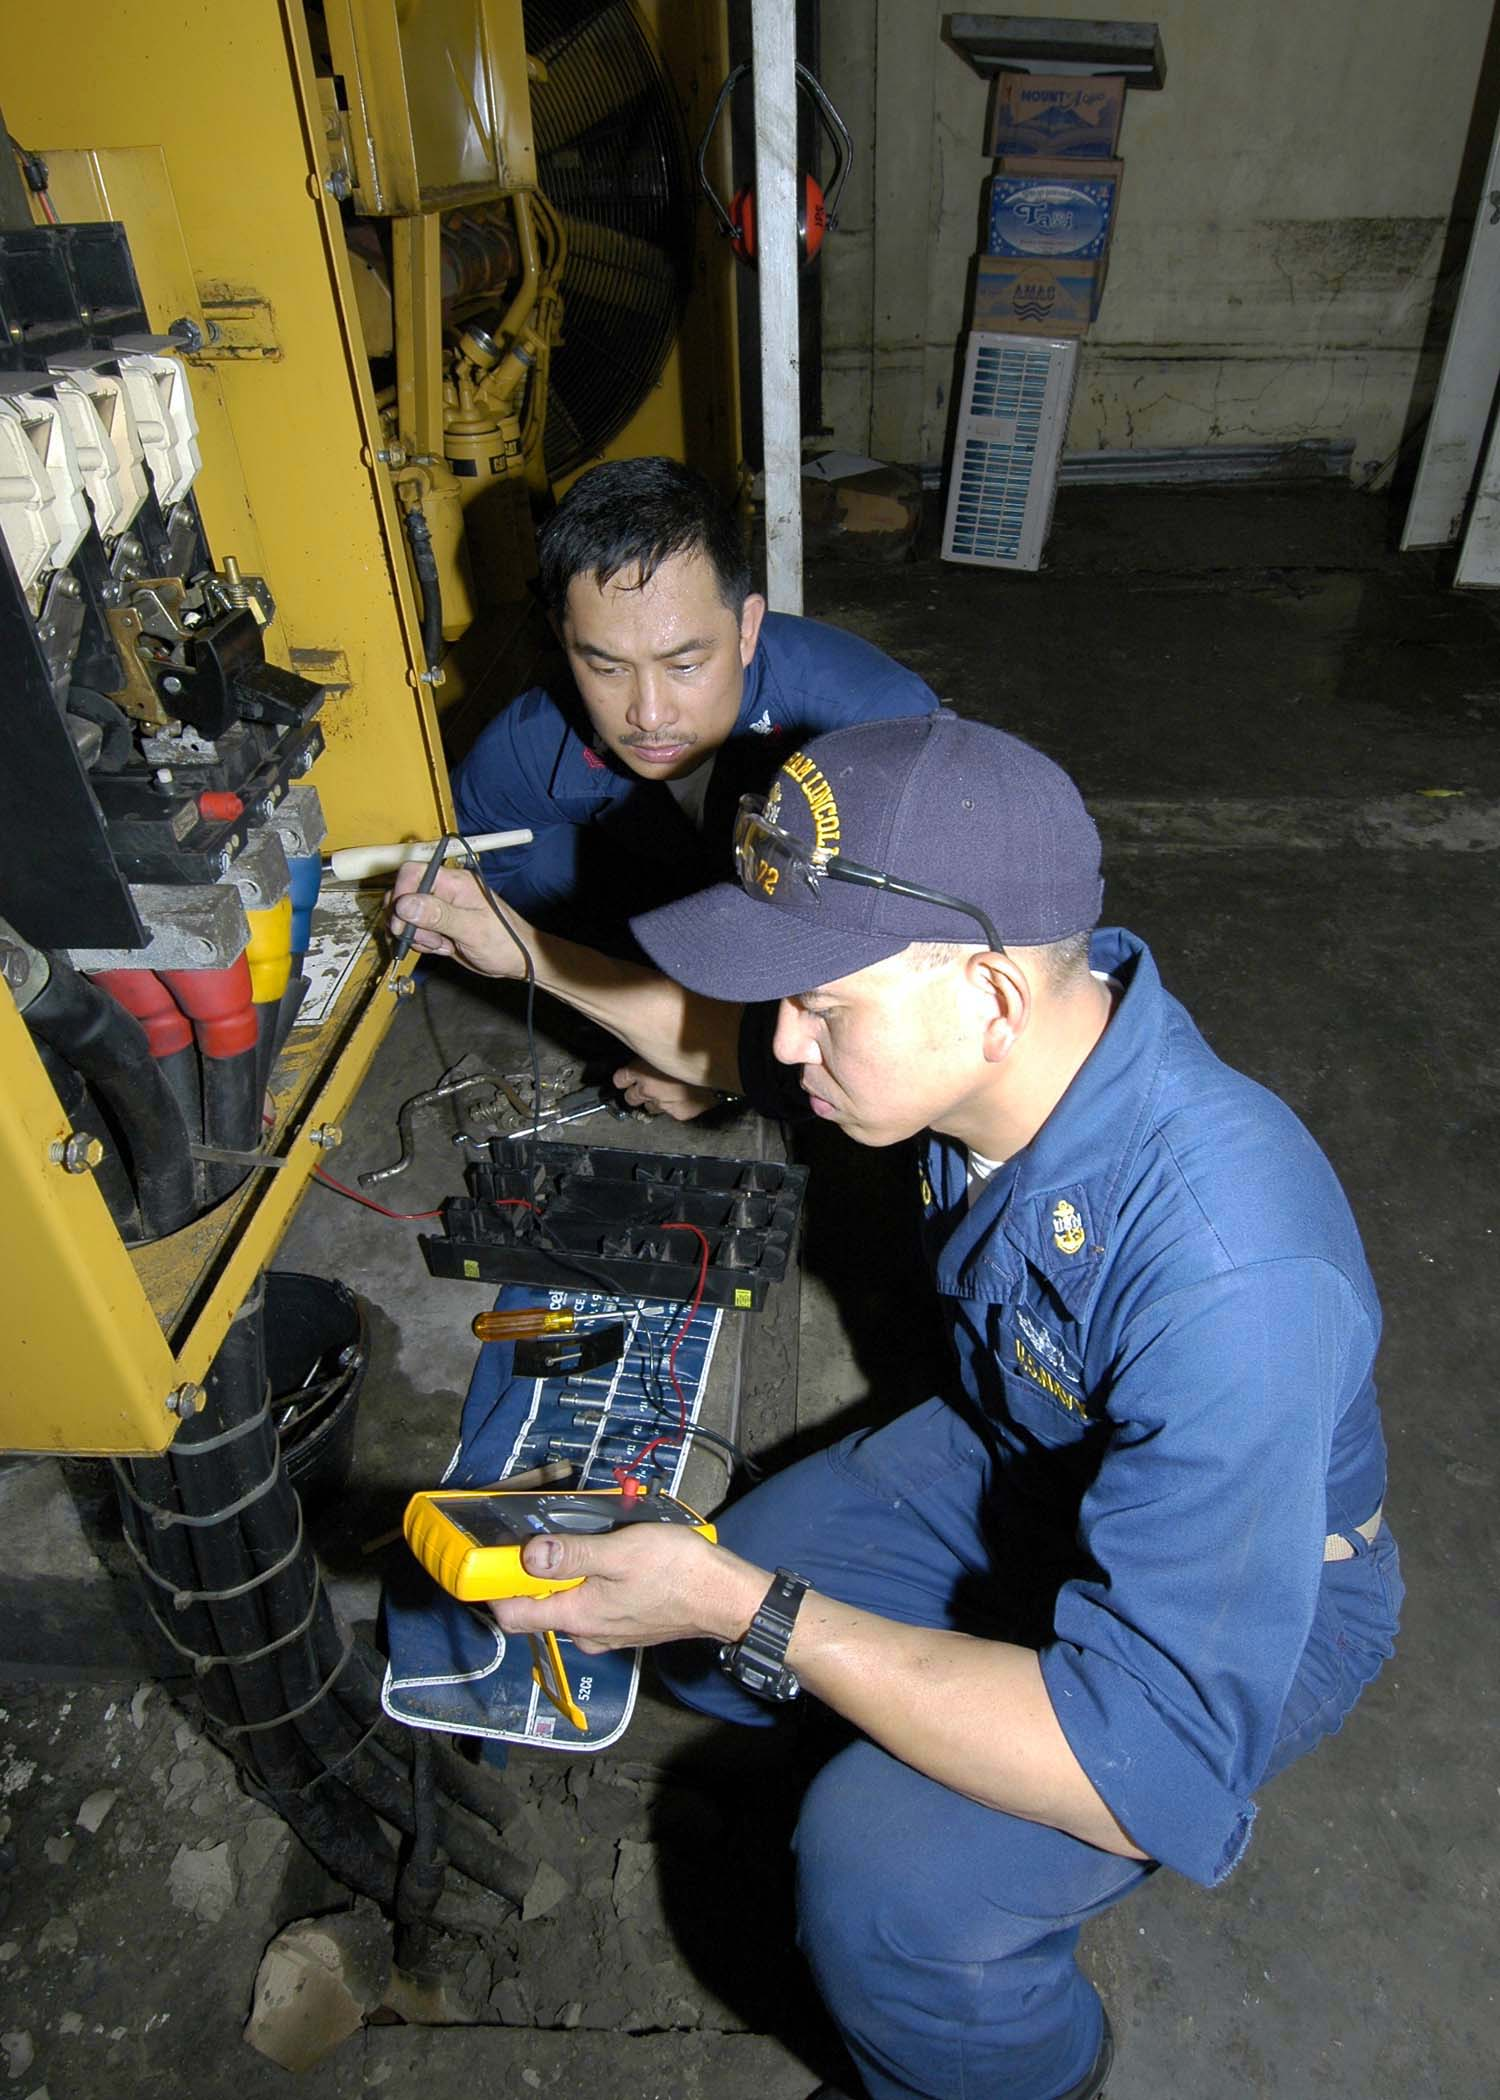 File:US Navy 050106-N-9951E-022 Chief Electrician's Mate Conrad ...